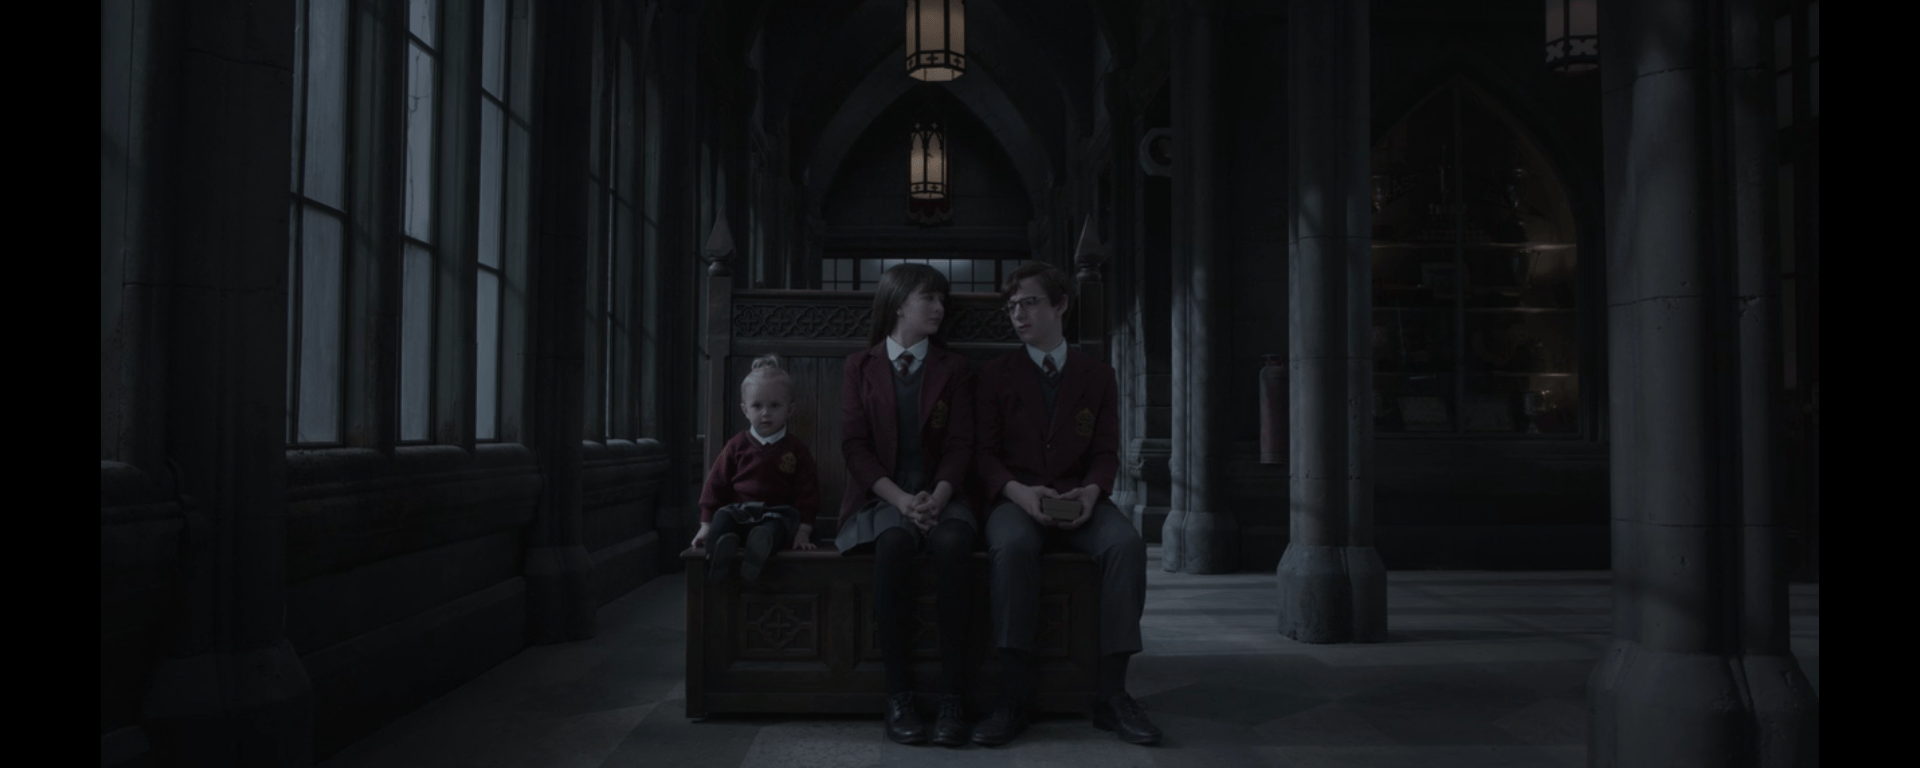 a series of unfortunate events analysis In this installment, noah cruickshank and kevin mcfarland discuss a series of  unfortunate events, the comedically dour bestselling 13-book.